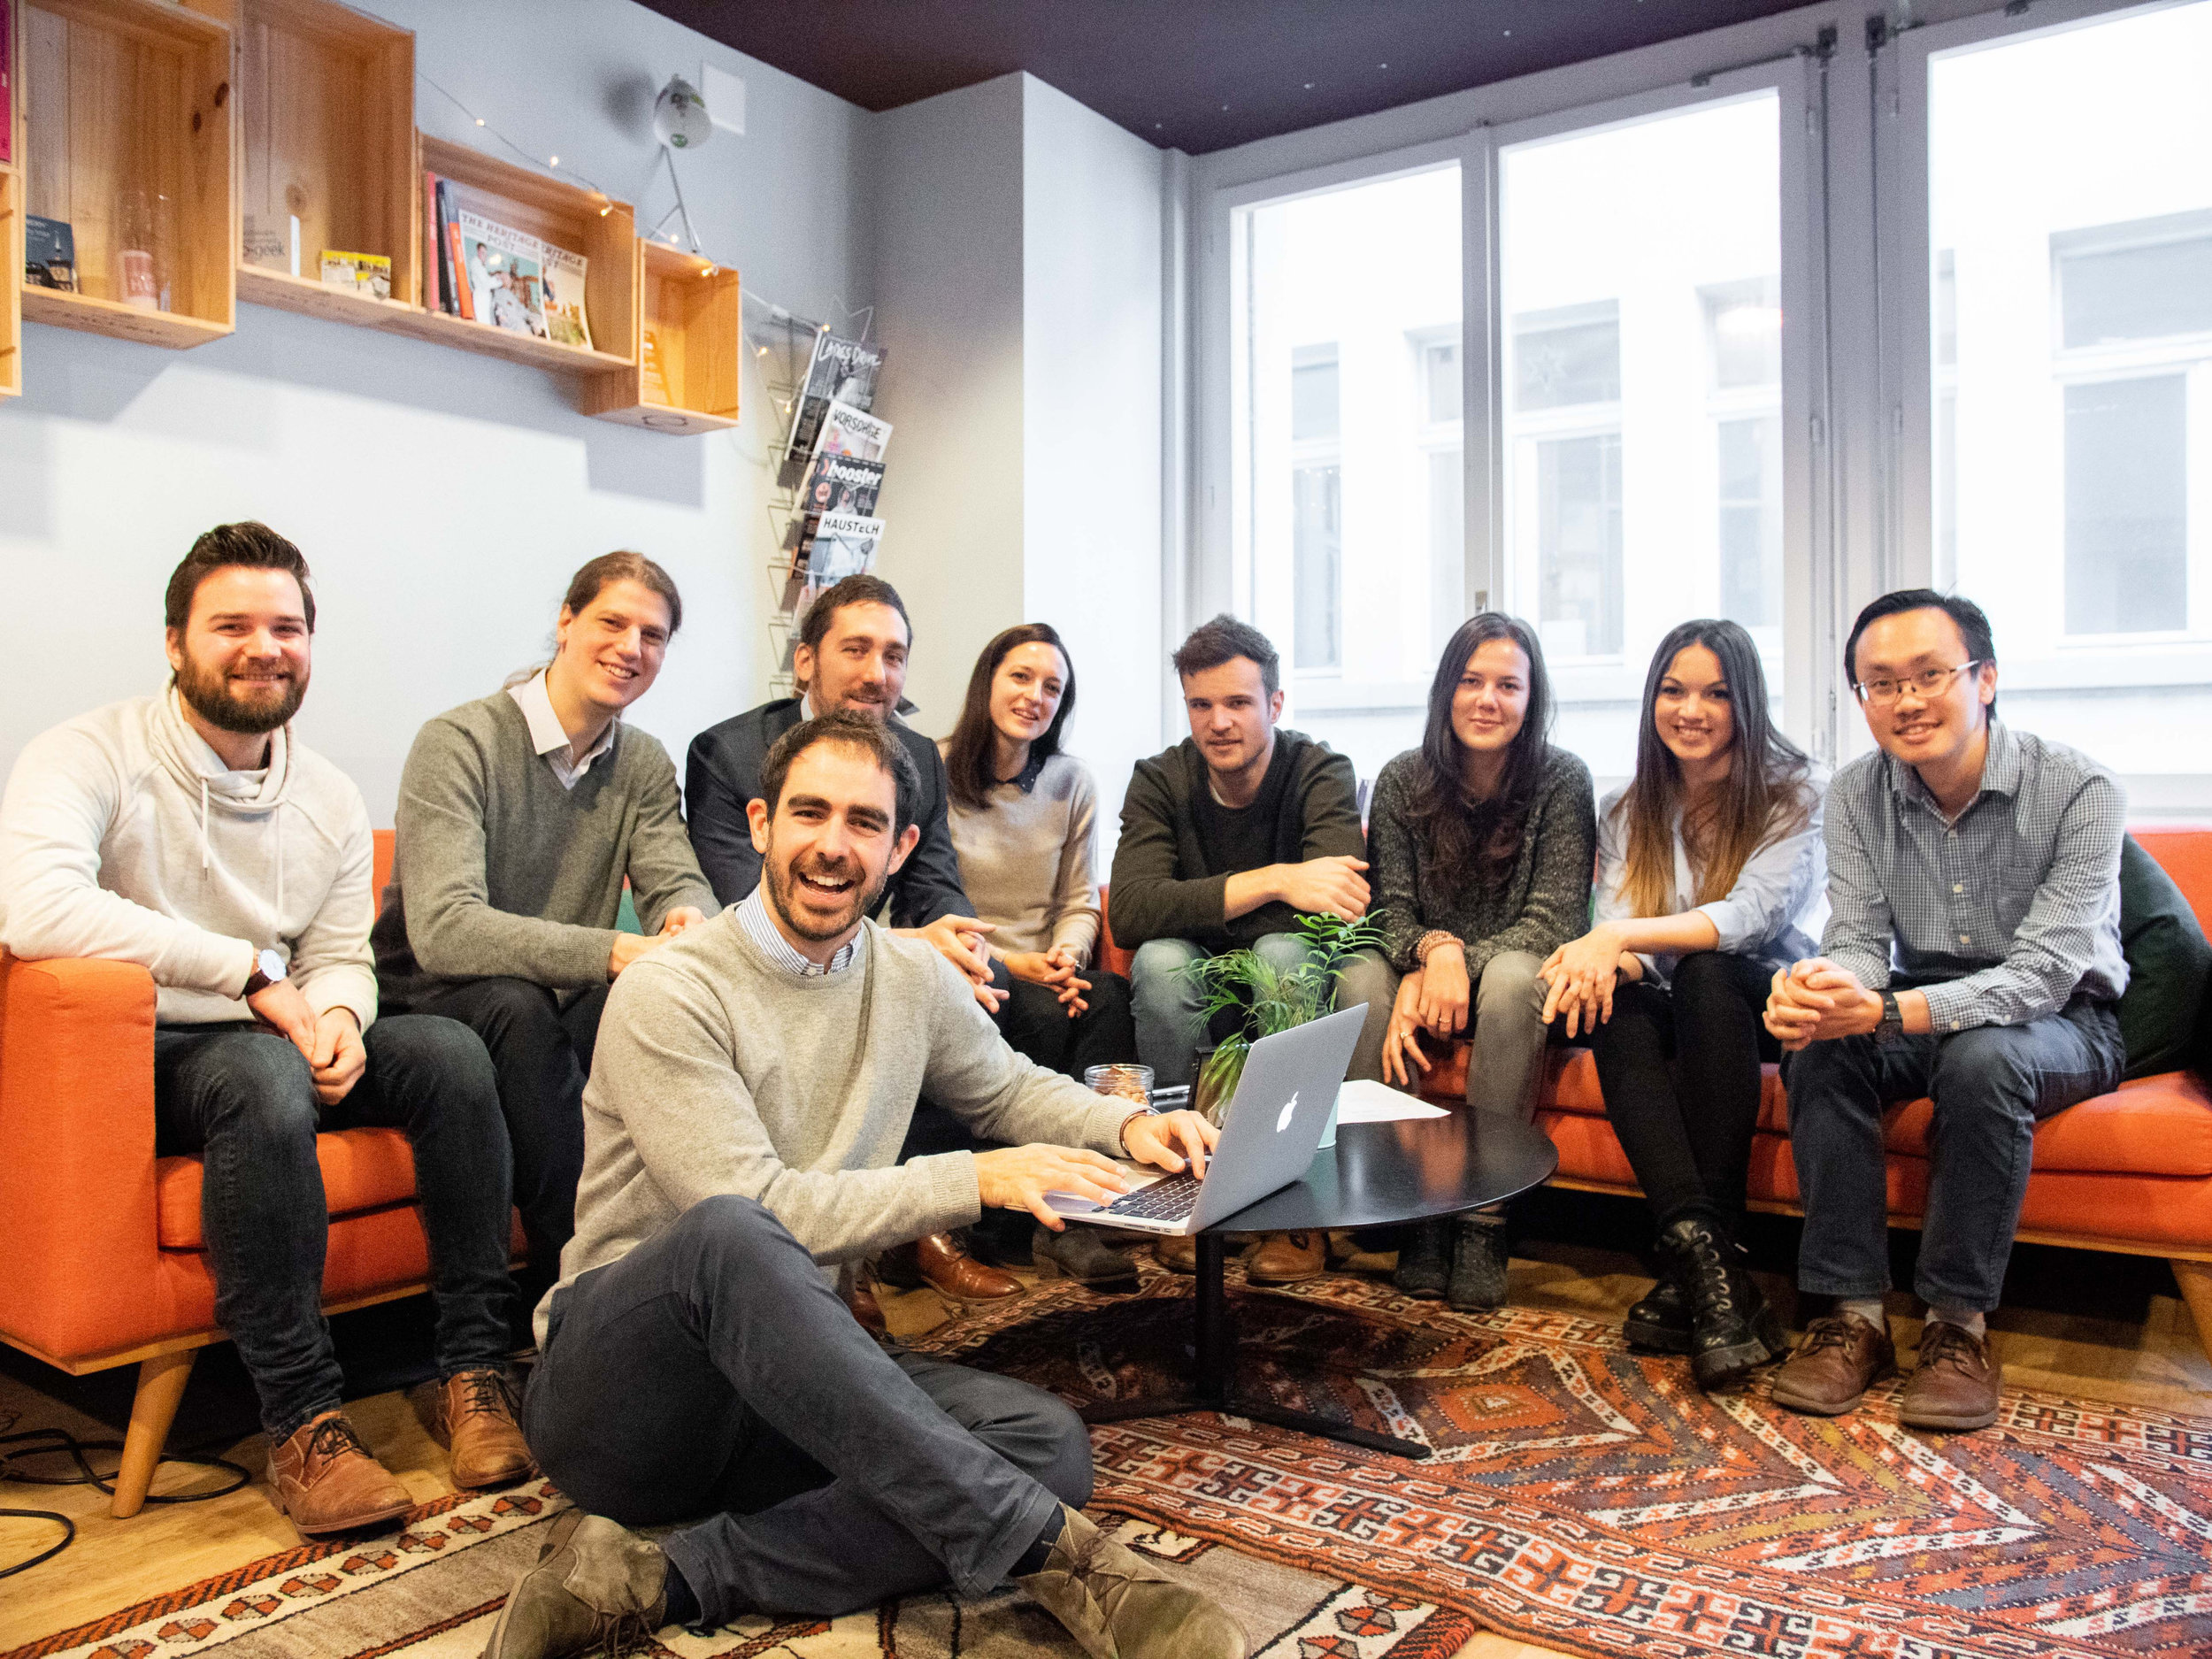 Pre-series A funding round [june'19] - RetinAI is happy to announce that we have just closed a CHF 2.3M pre-Series A financing round.btov Partners' Industrial Technologies Fund has led the round with participation of Swiss-based investor network Investiere and a consortium of selected private investors. Check it out in our Full PRESS RELEASE